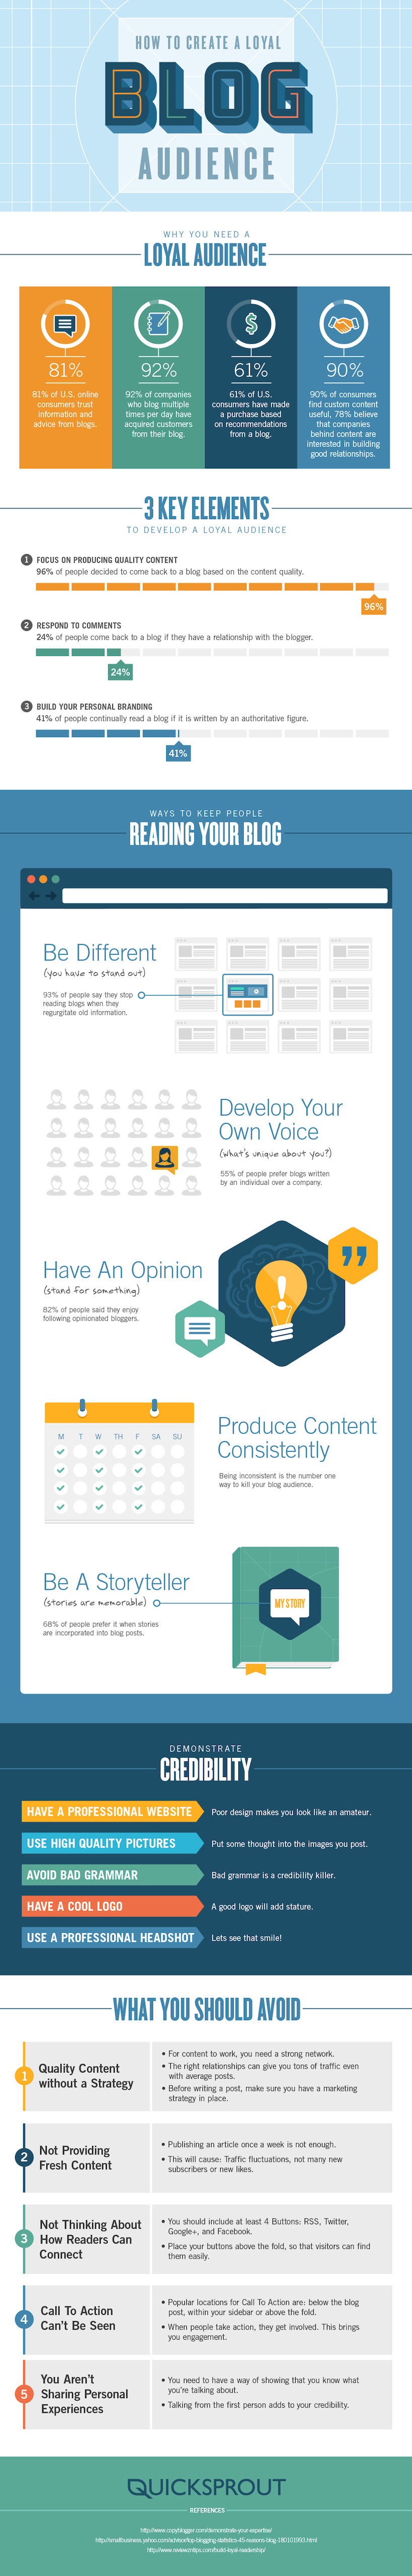 The Science of Creating A Loyal Blog Audience - infographic